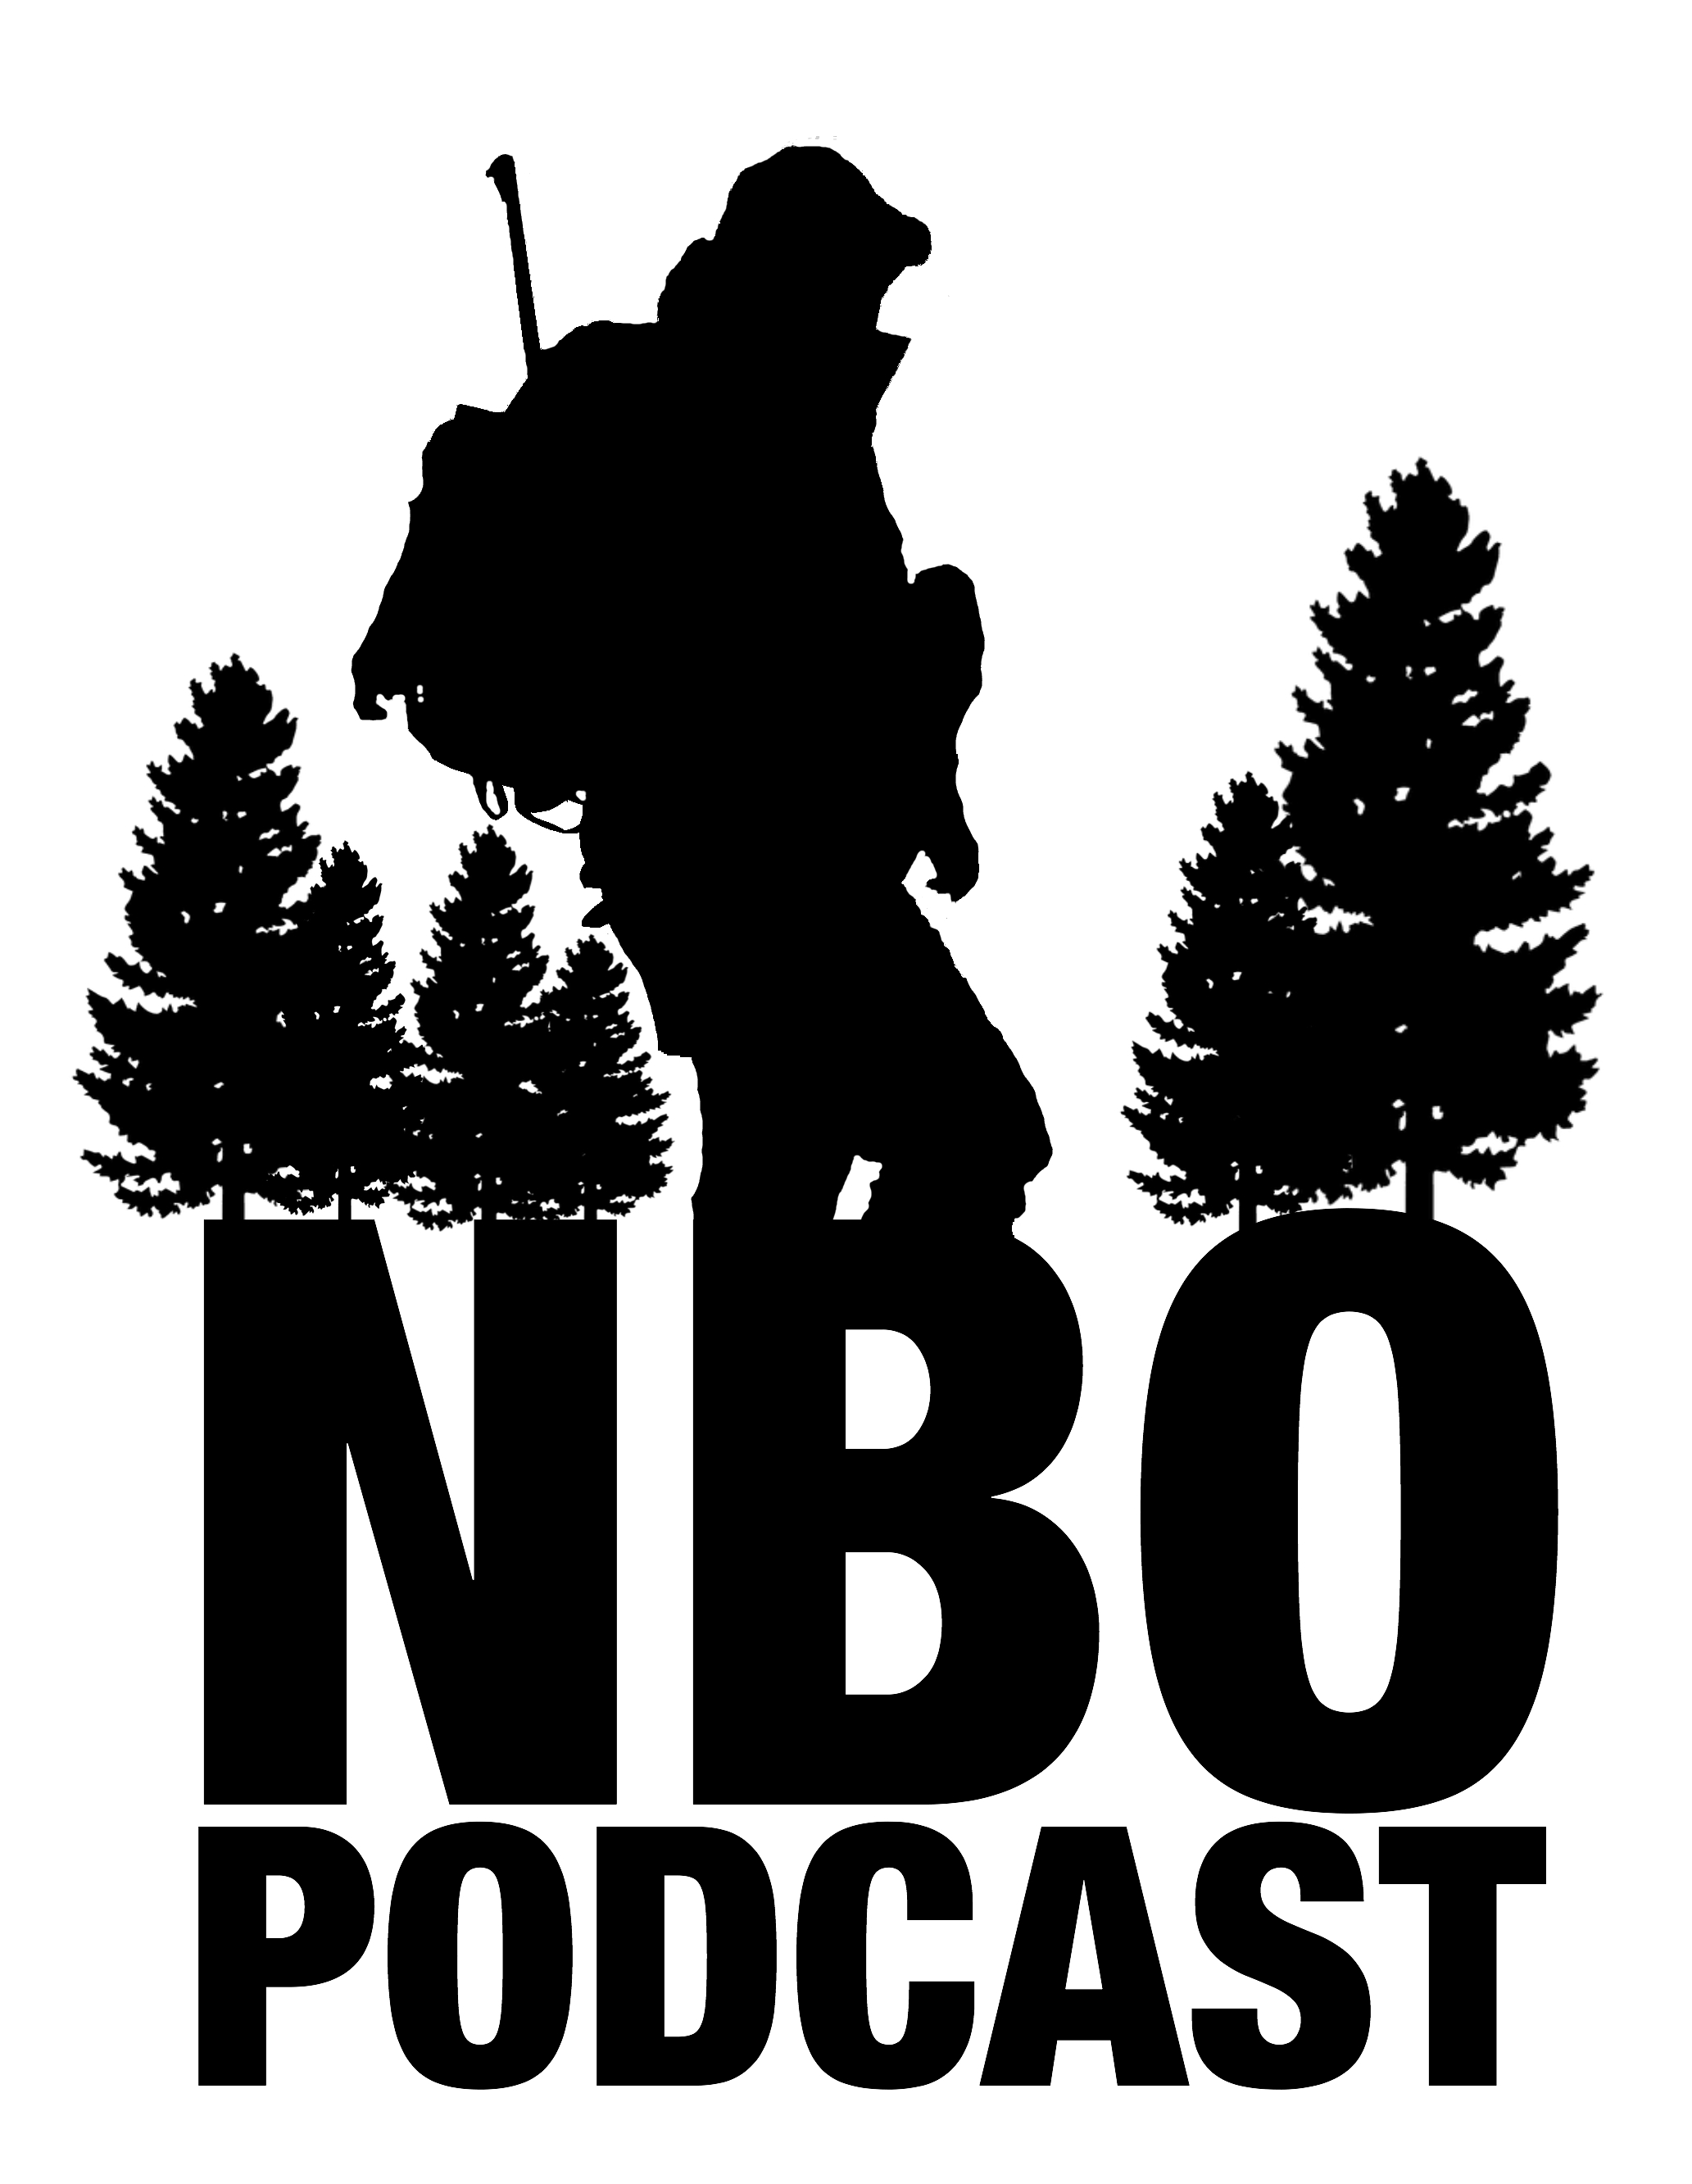 Northern Boys Outfitting Podcast - Northern Boys Outfitting Podcast is hosted by Al Strader from NBO TV, we plan to bring you stories from our hunts and bring on guests to talk about there experiences.